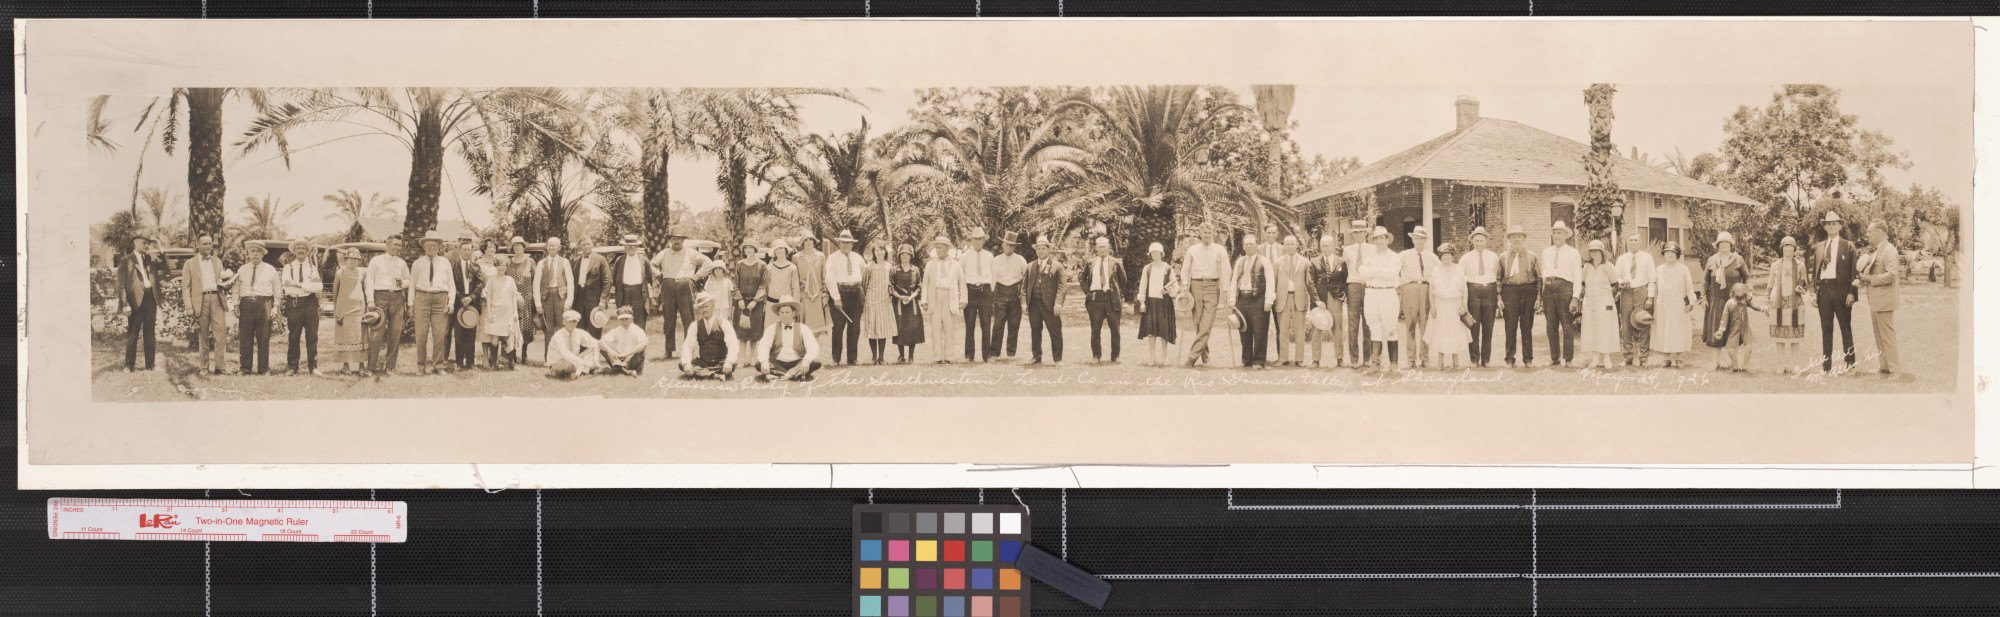 Excursion party of the Southwestern Land Co. in the Rio Grande Valley at Sharyland                                                                                                      [Sequence #]: 1 of 1